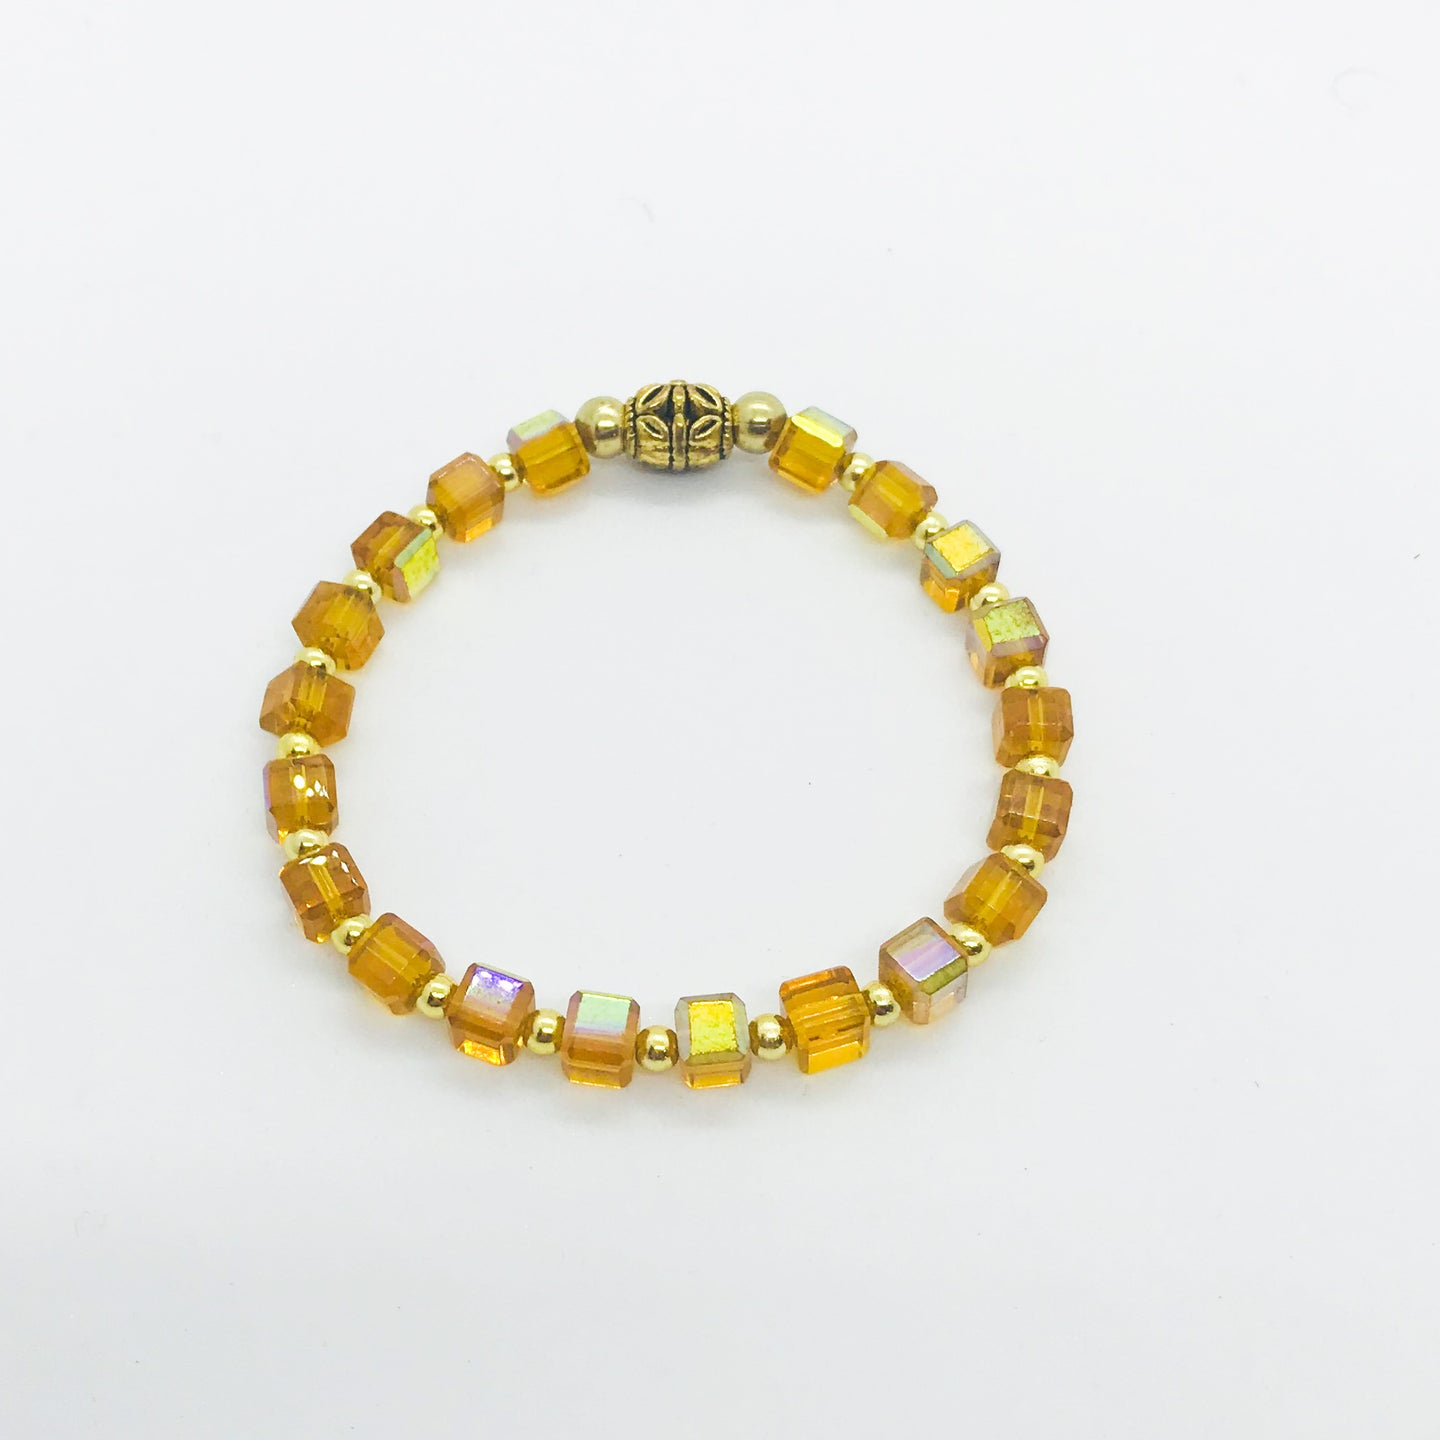 Glass Bead Stretchy Bracelet - B561